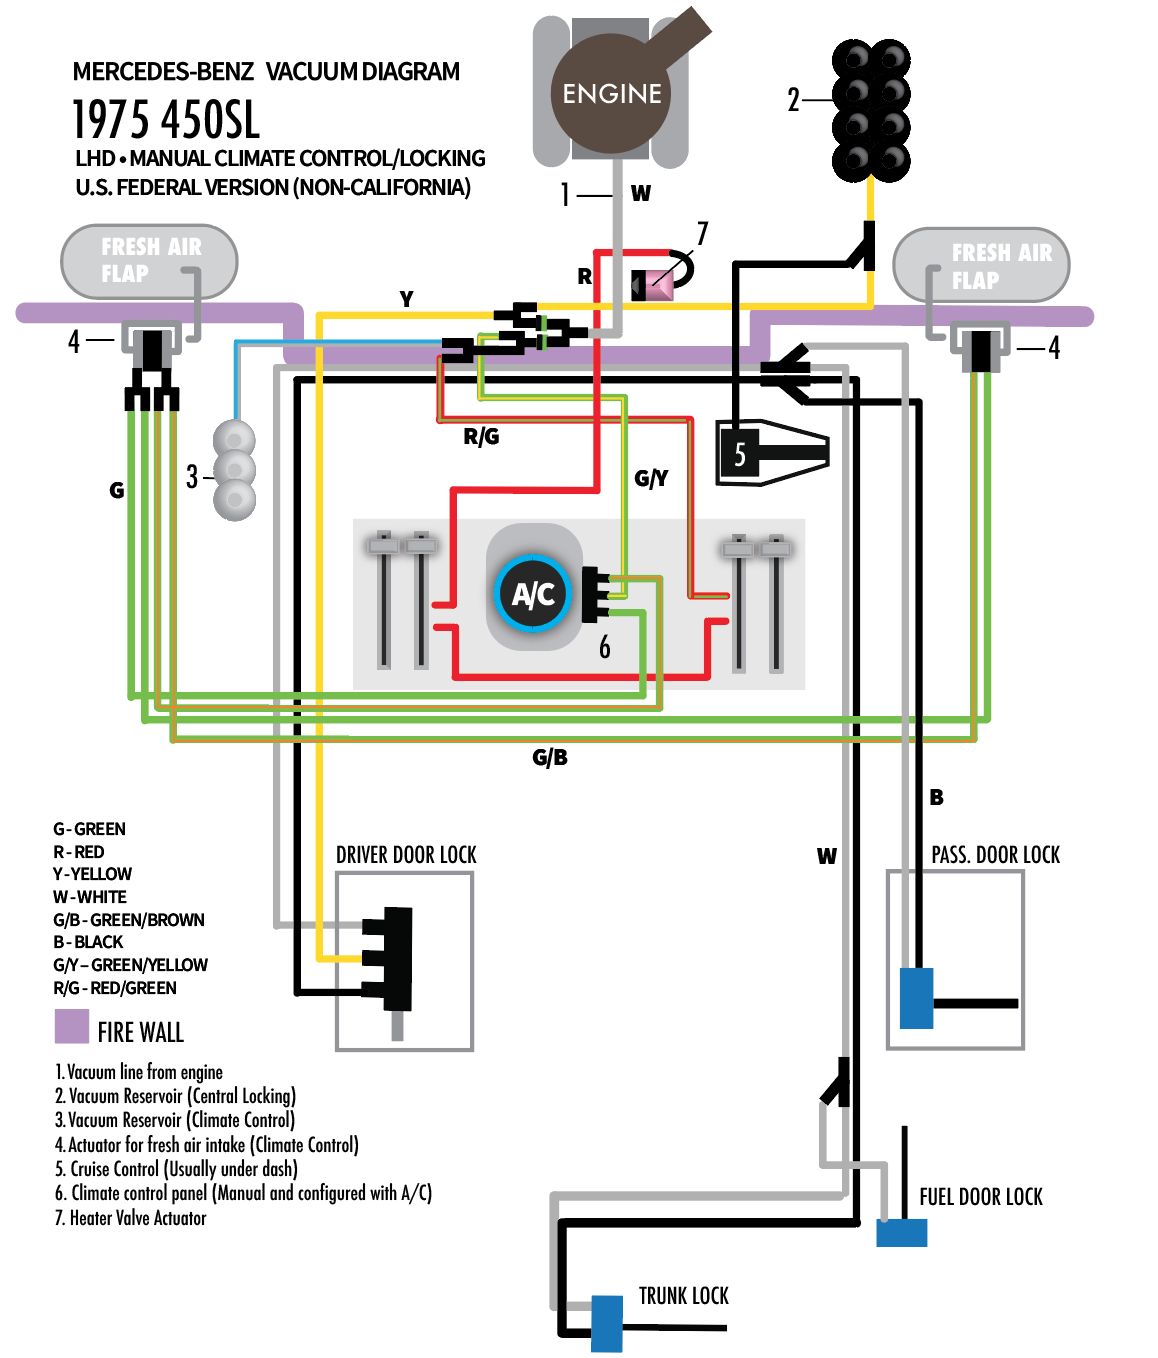 mercedes benz vacuum diagram wiring diagram database mercedes benz vito vacuum diagram mercedes benz vito vacuum diagram [ 1158 x 1358 Pixel ]